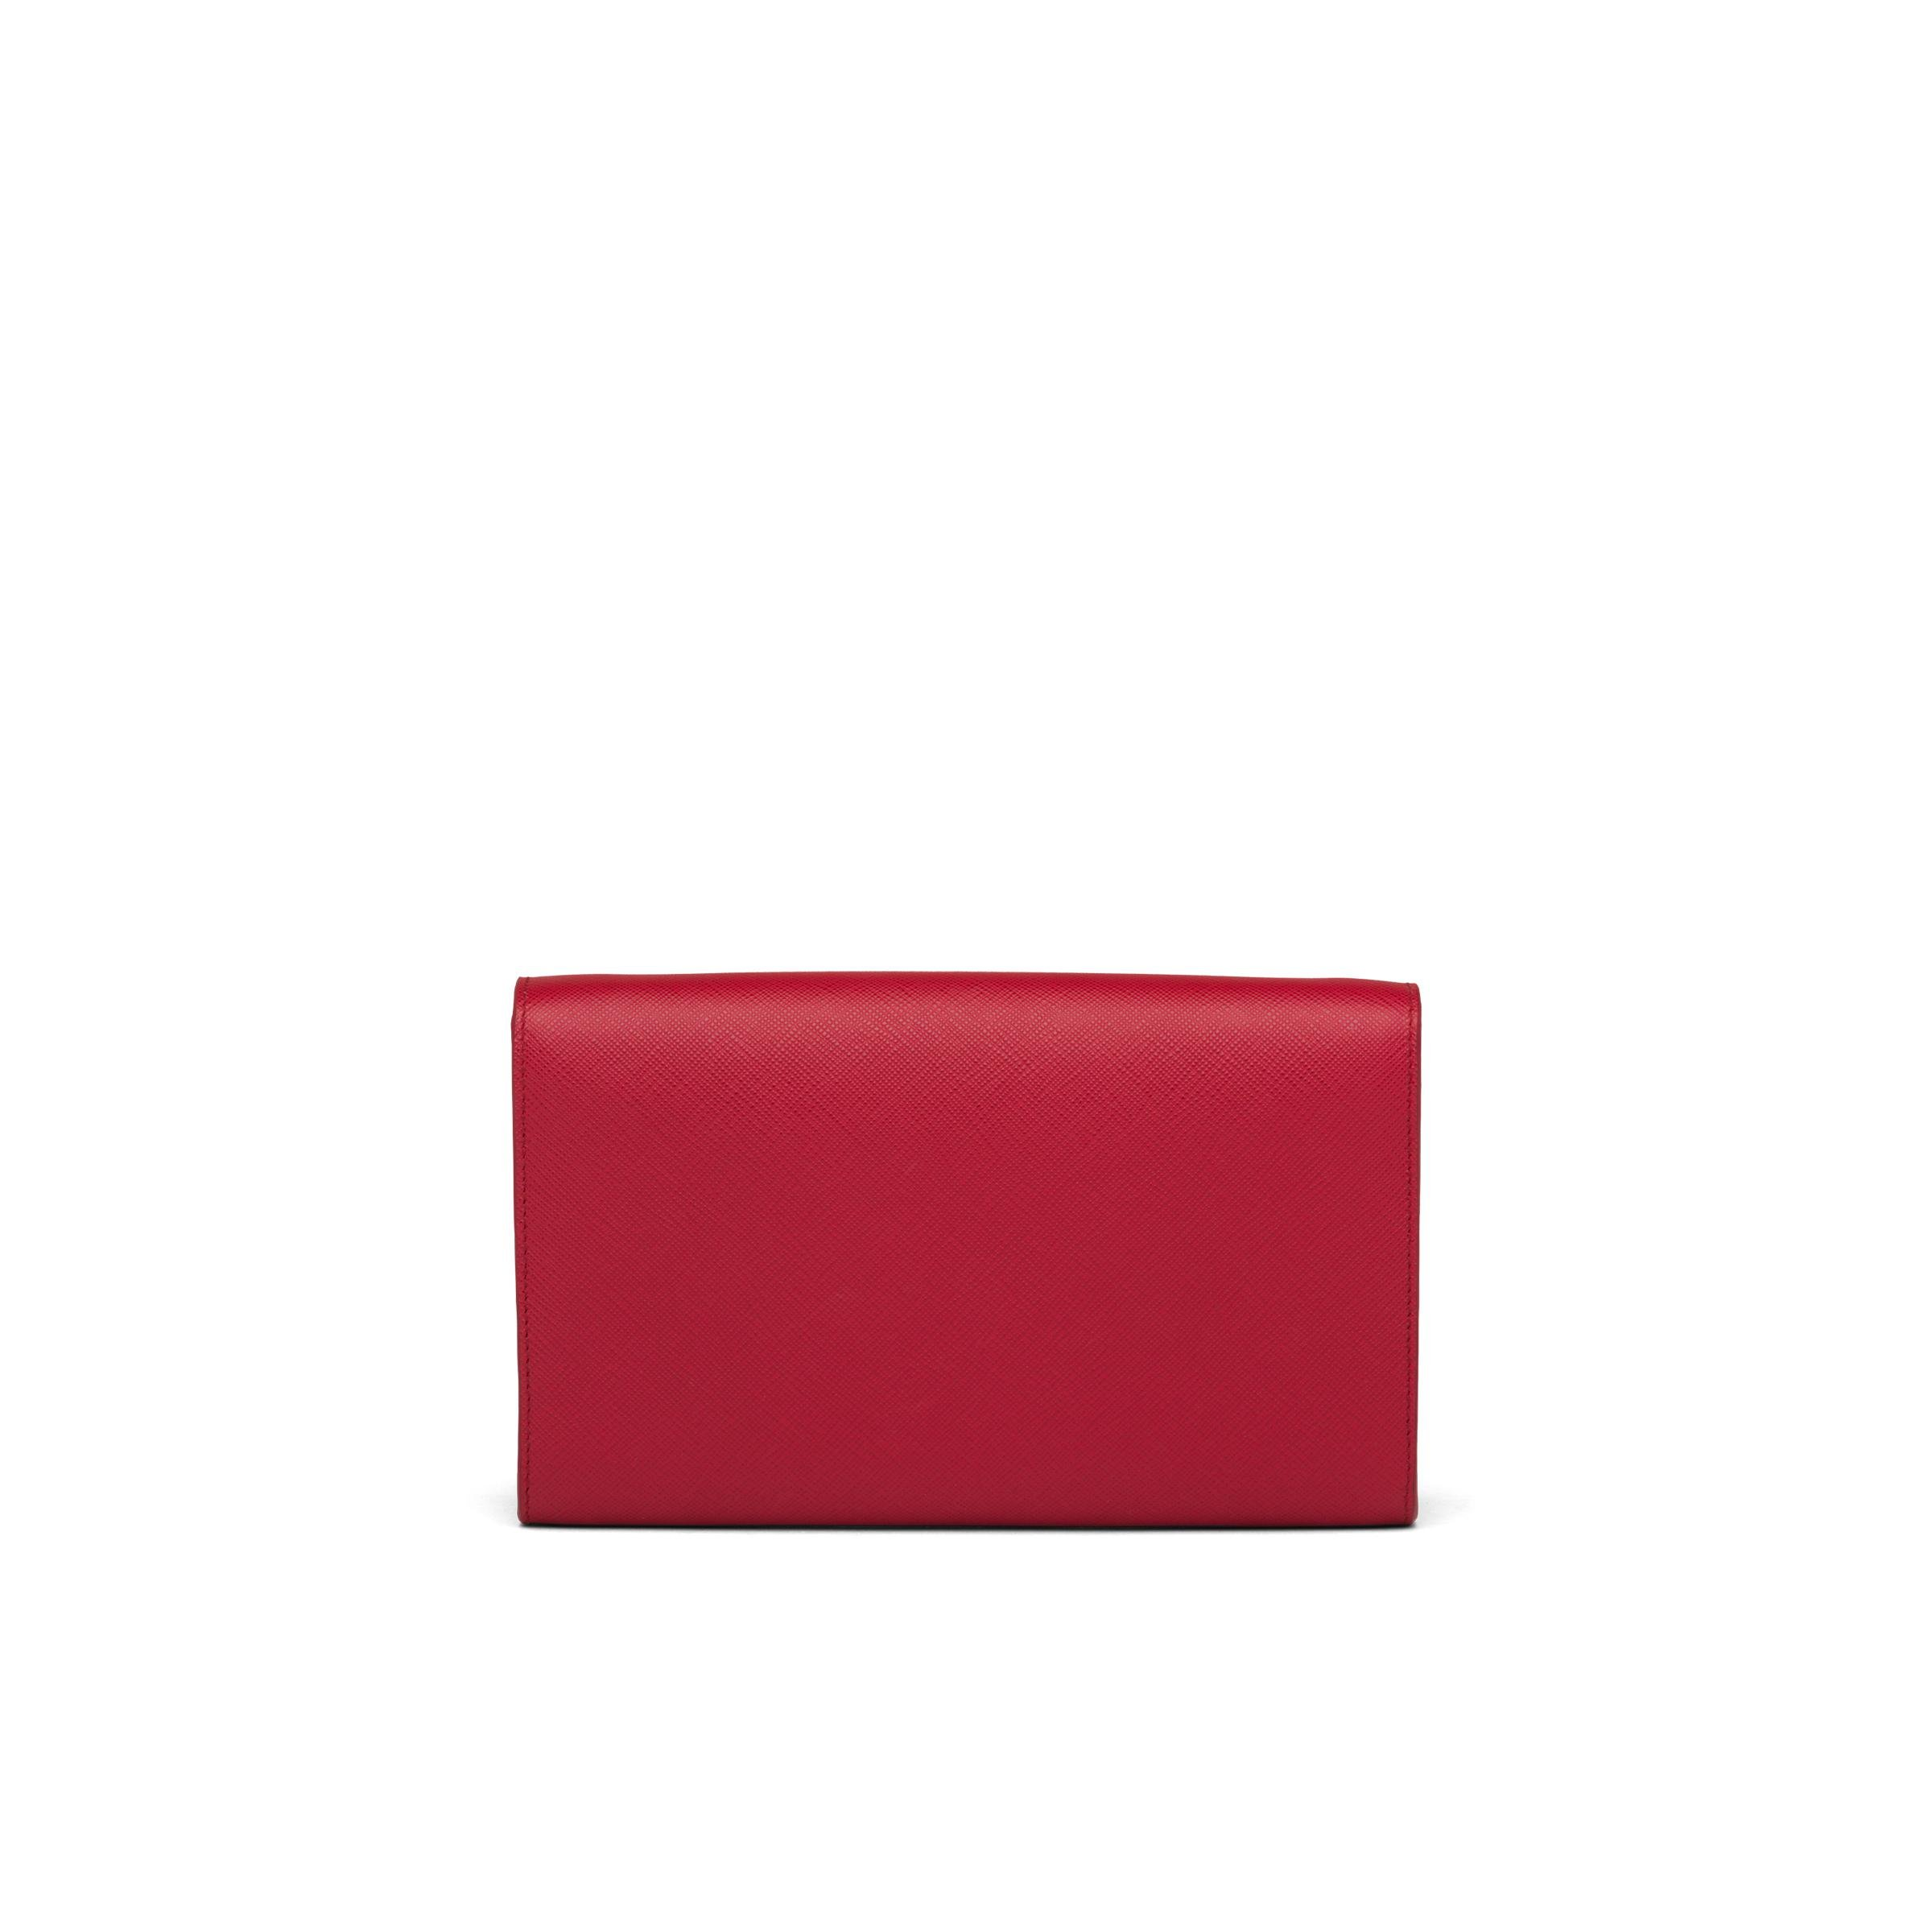 Saffiano And Leather Wallet With Shoulder Strap Women Fiery Red 3